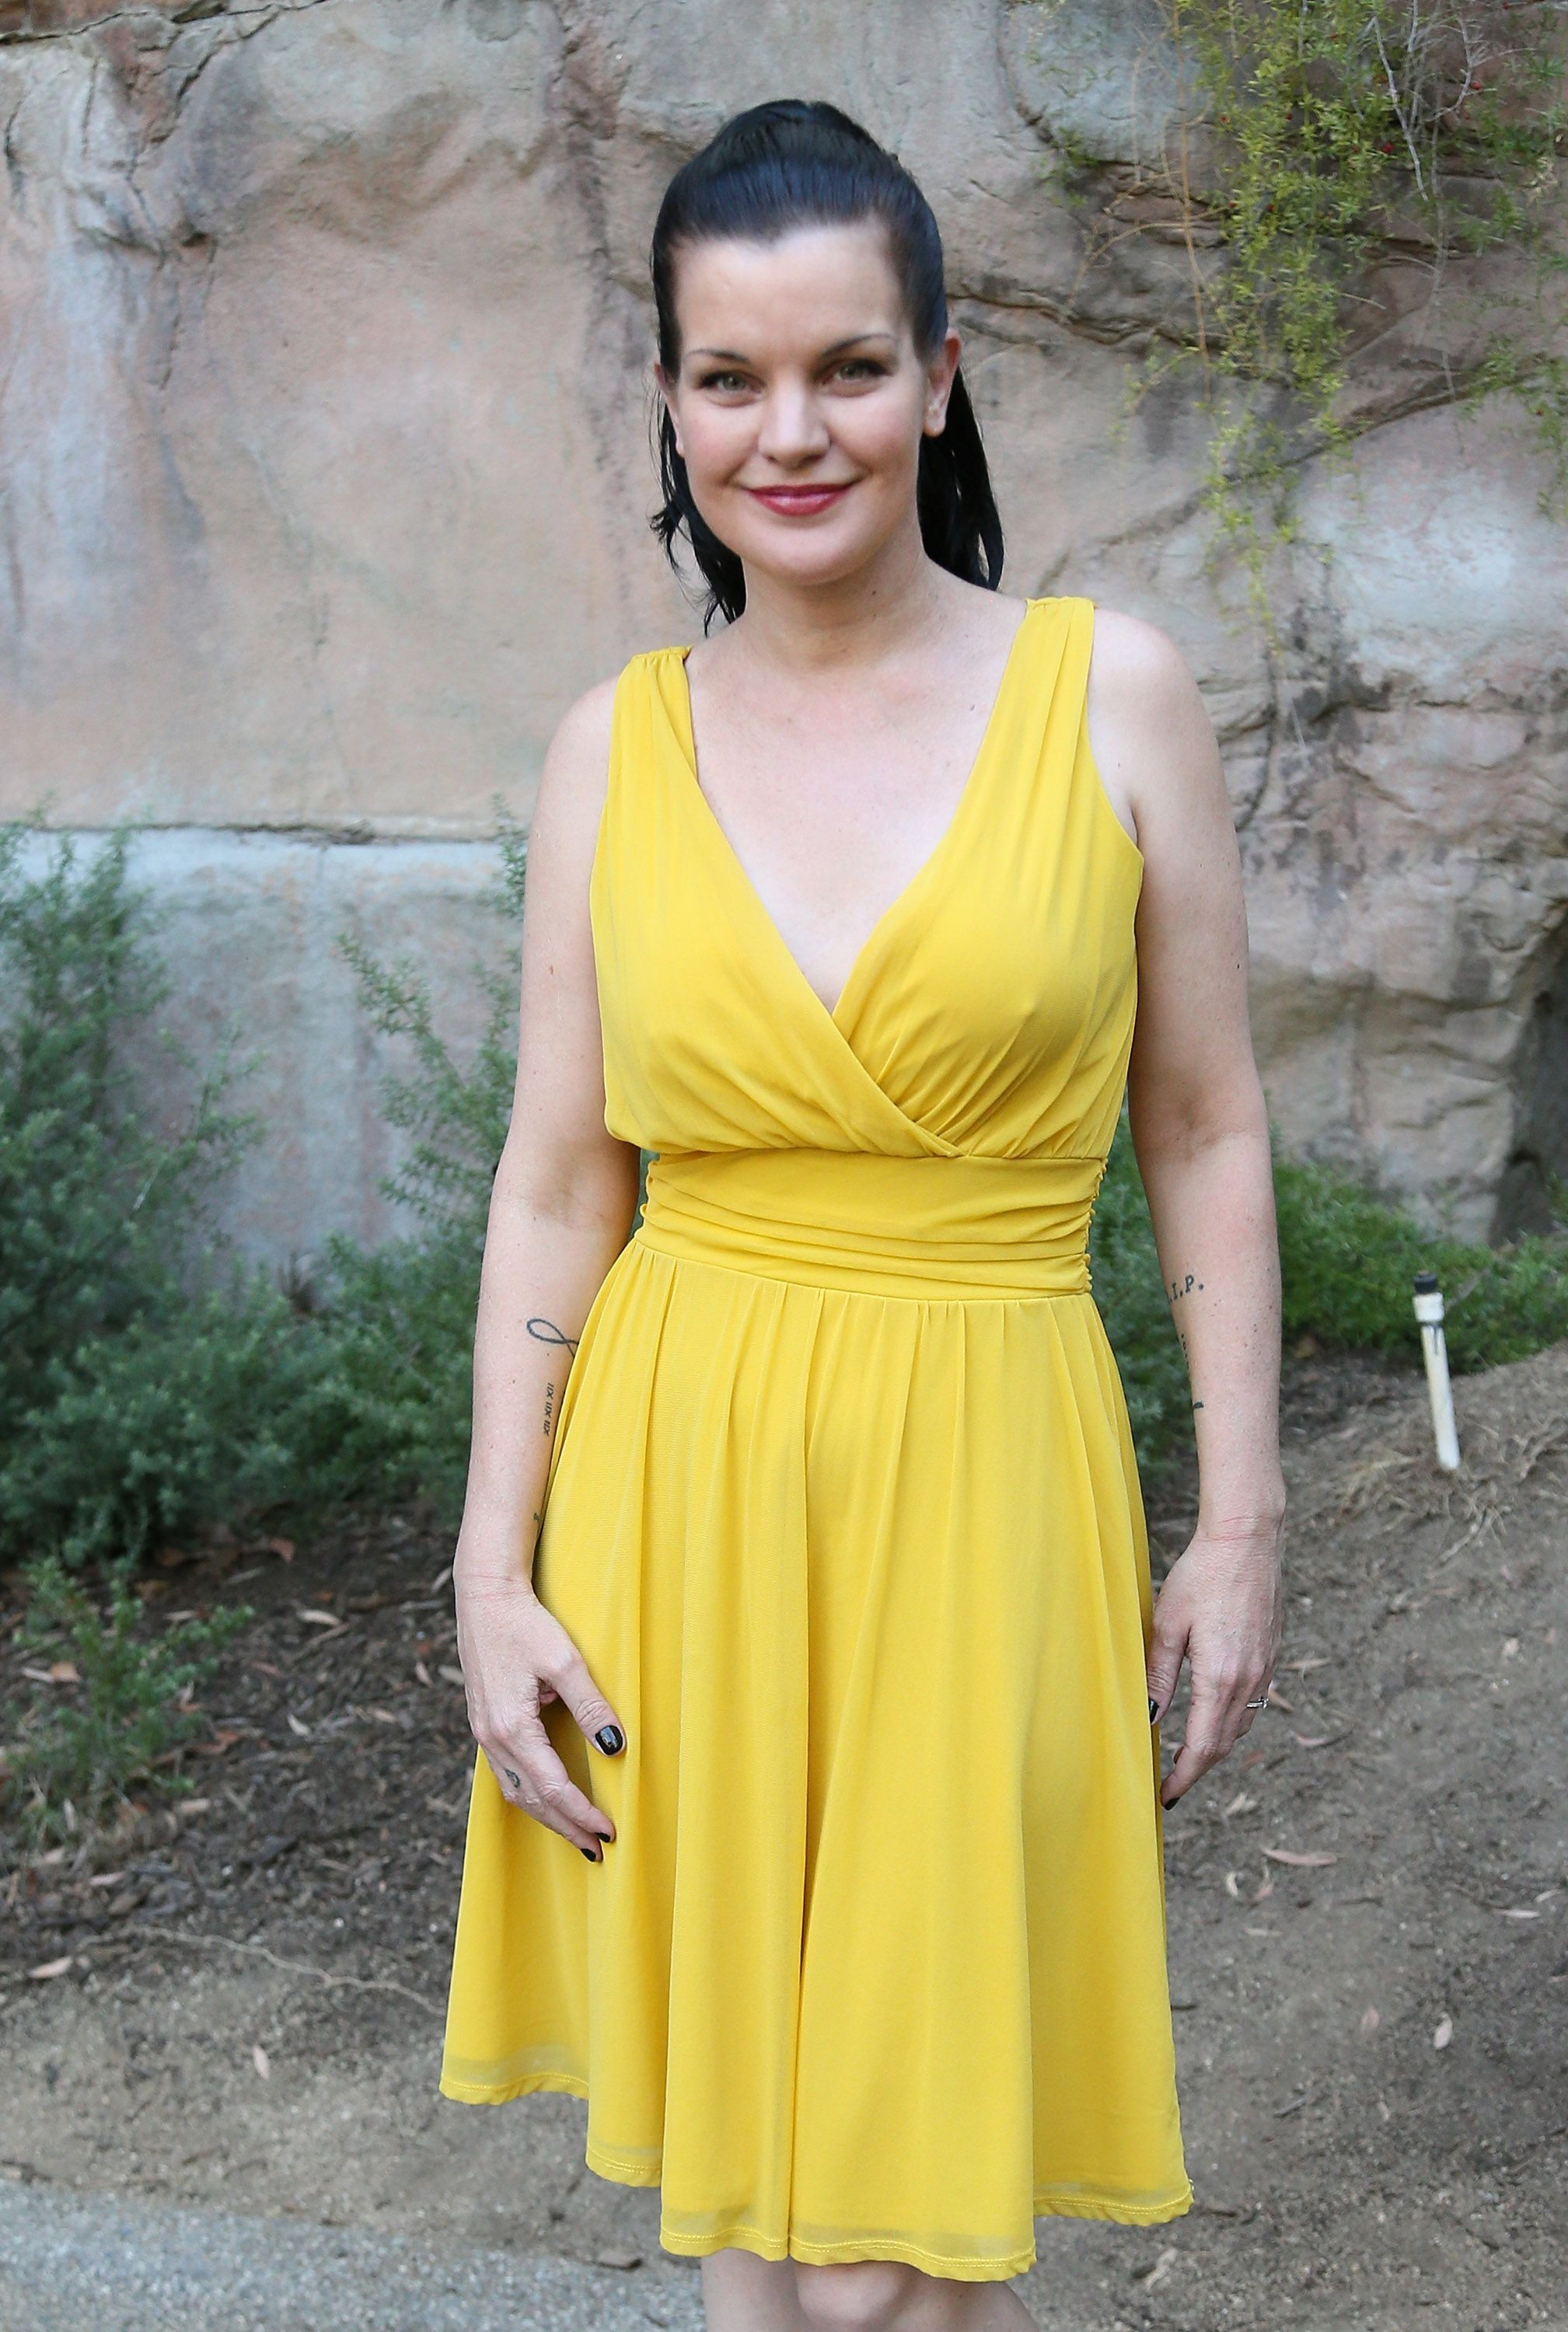 Pauley Perrette at the Greater Los Angeles Zoo Association's (GLAZA) 45th Annual Beastly Ball on June 20, 2015, in Los Angeles, California   Photo: David Livingston/Getty Images